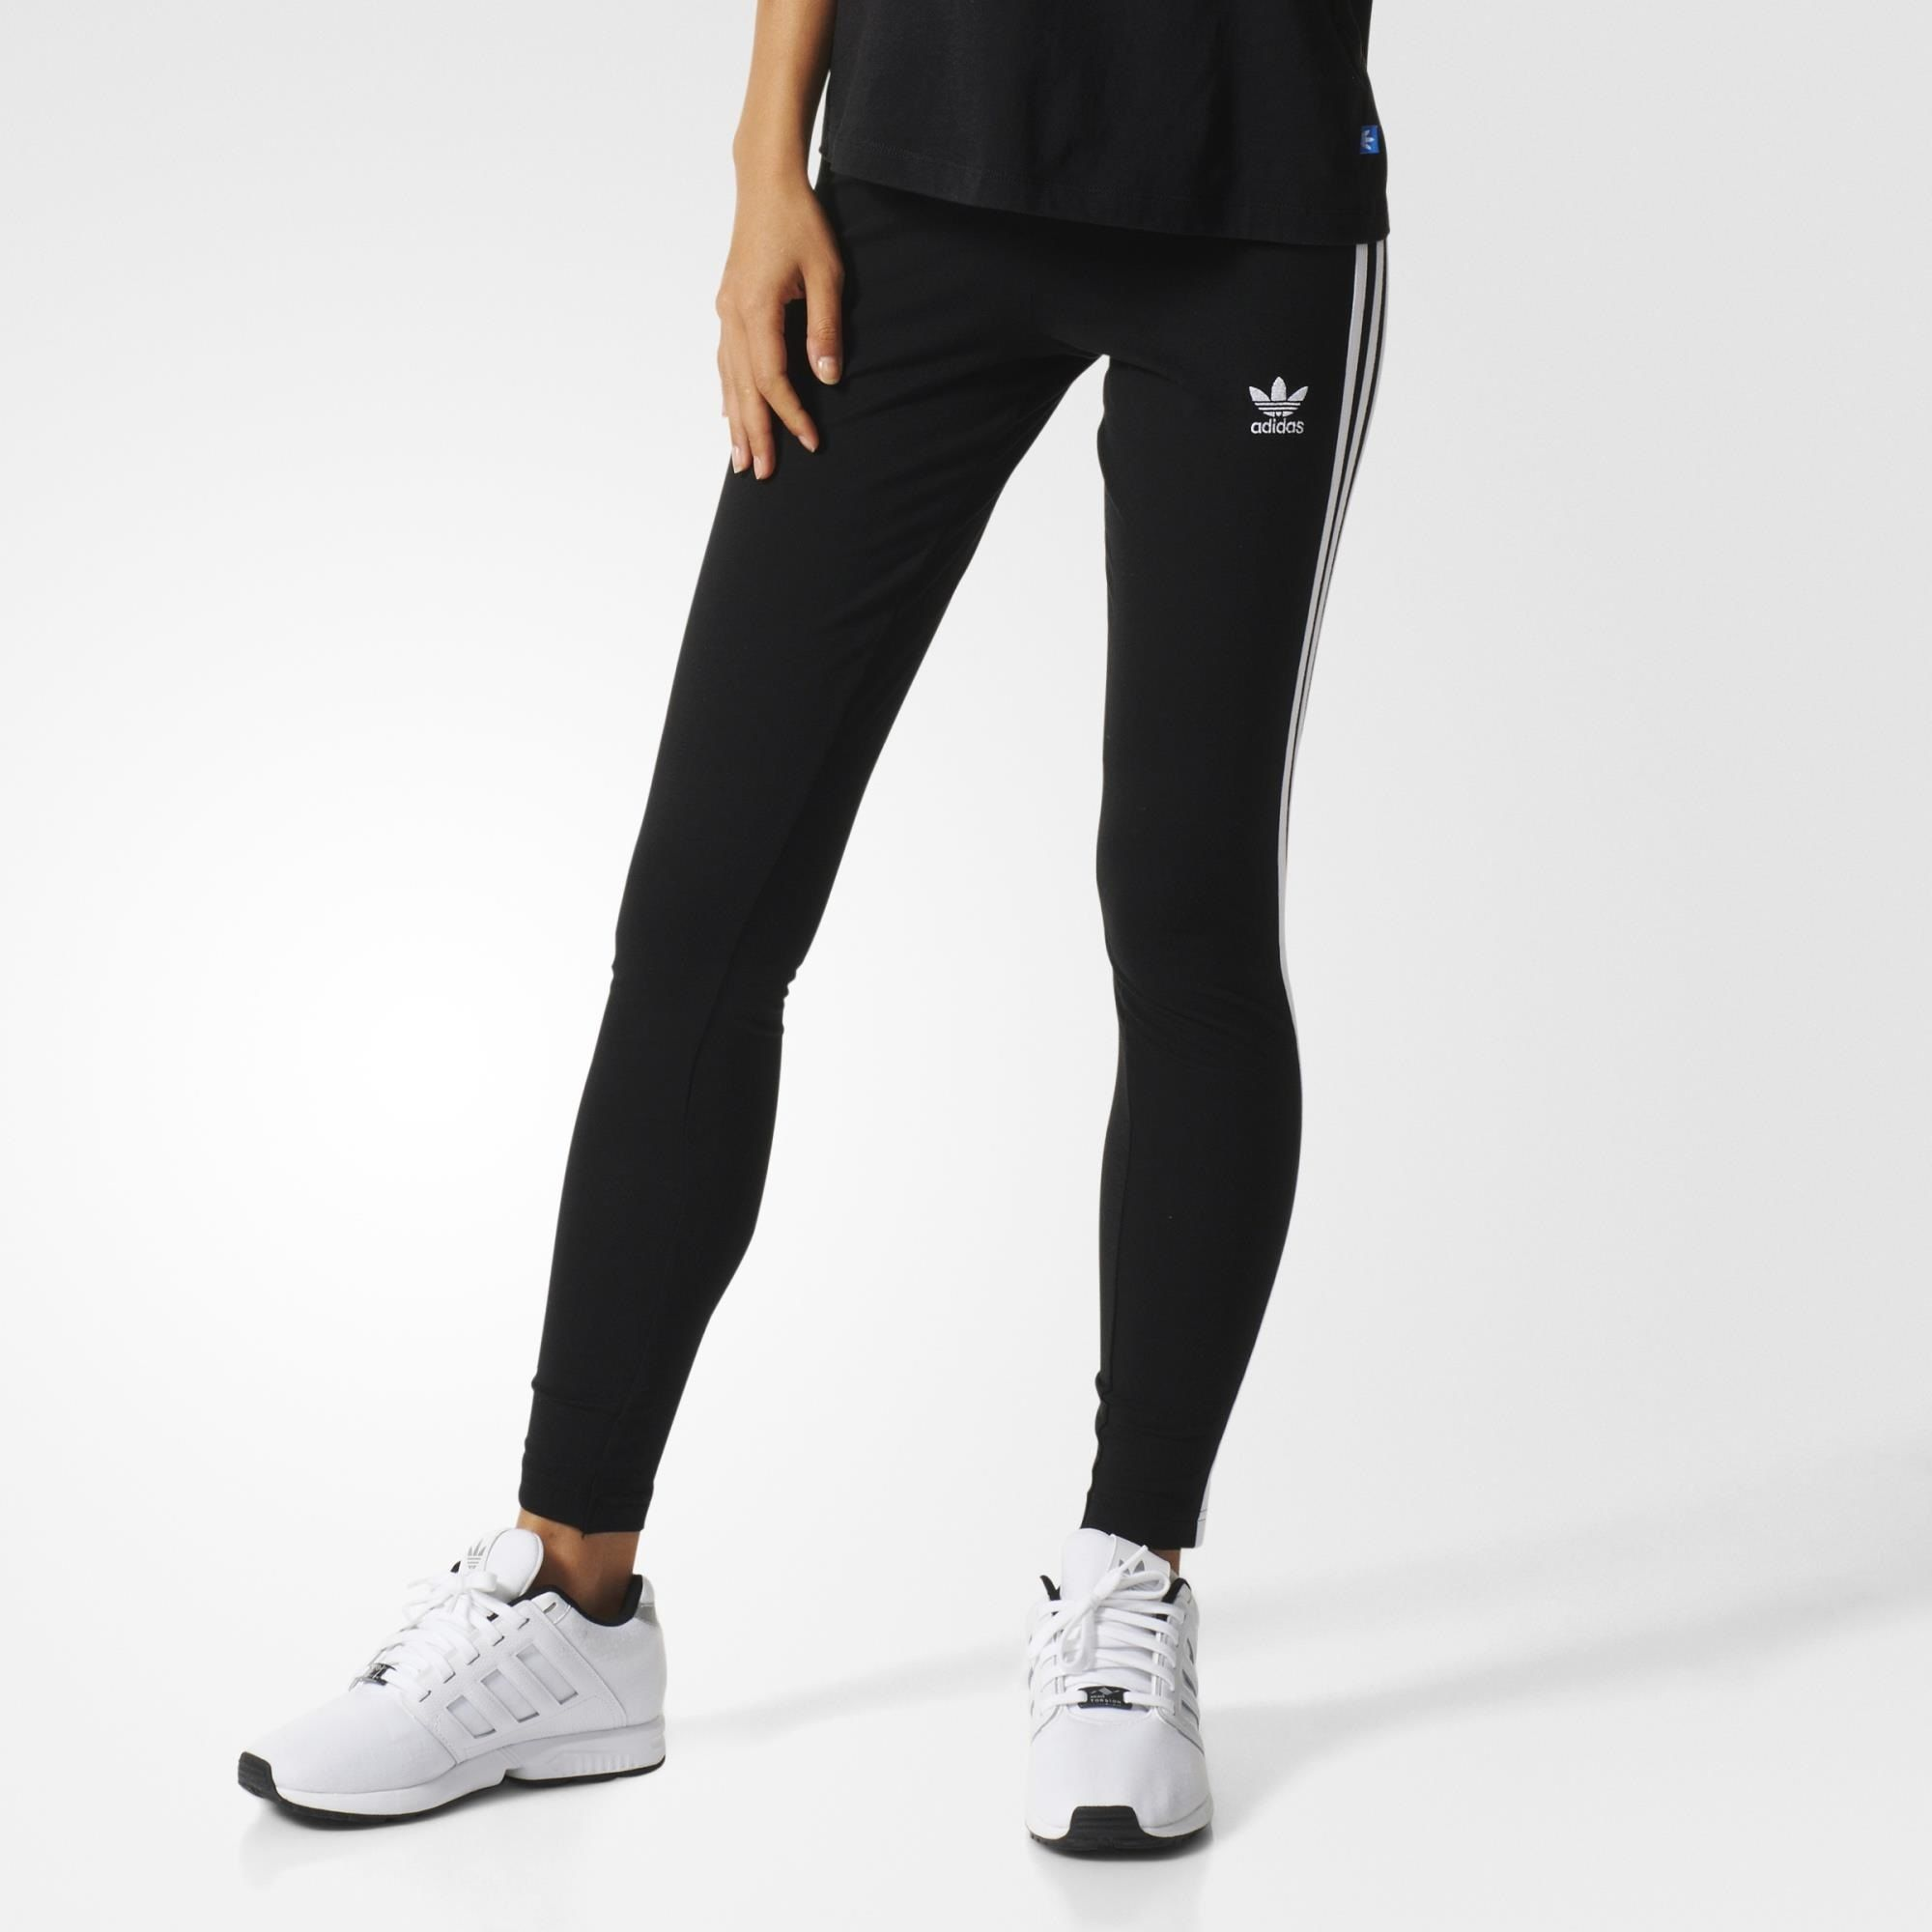 c9d74d22f5466 Product details of Adidas Women's Originals 3-Stripes Leggings  AJ8156(CE2036) Black